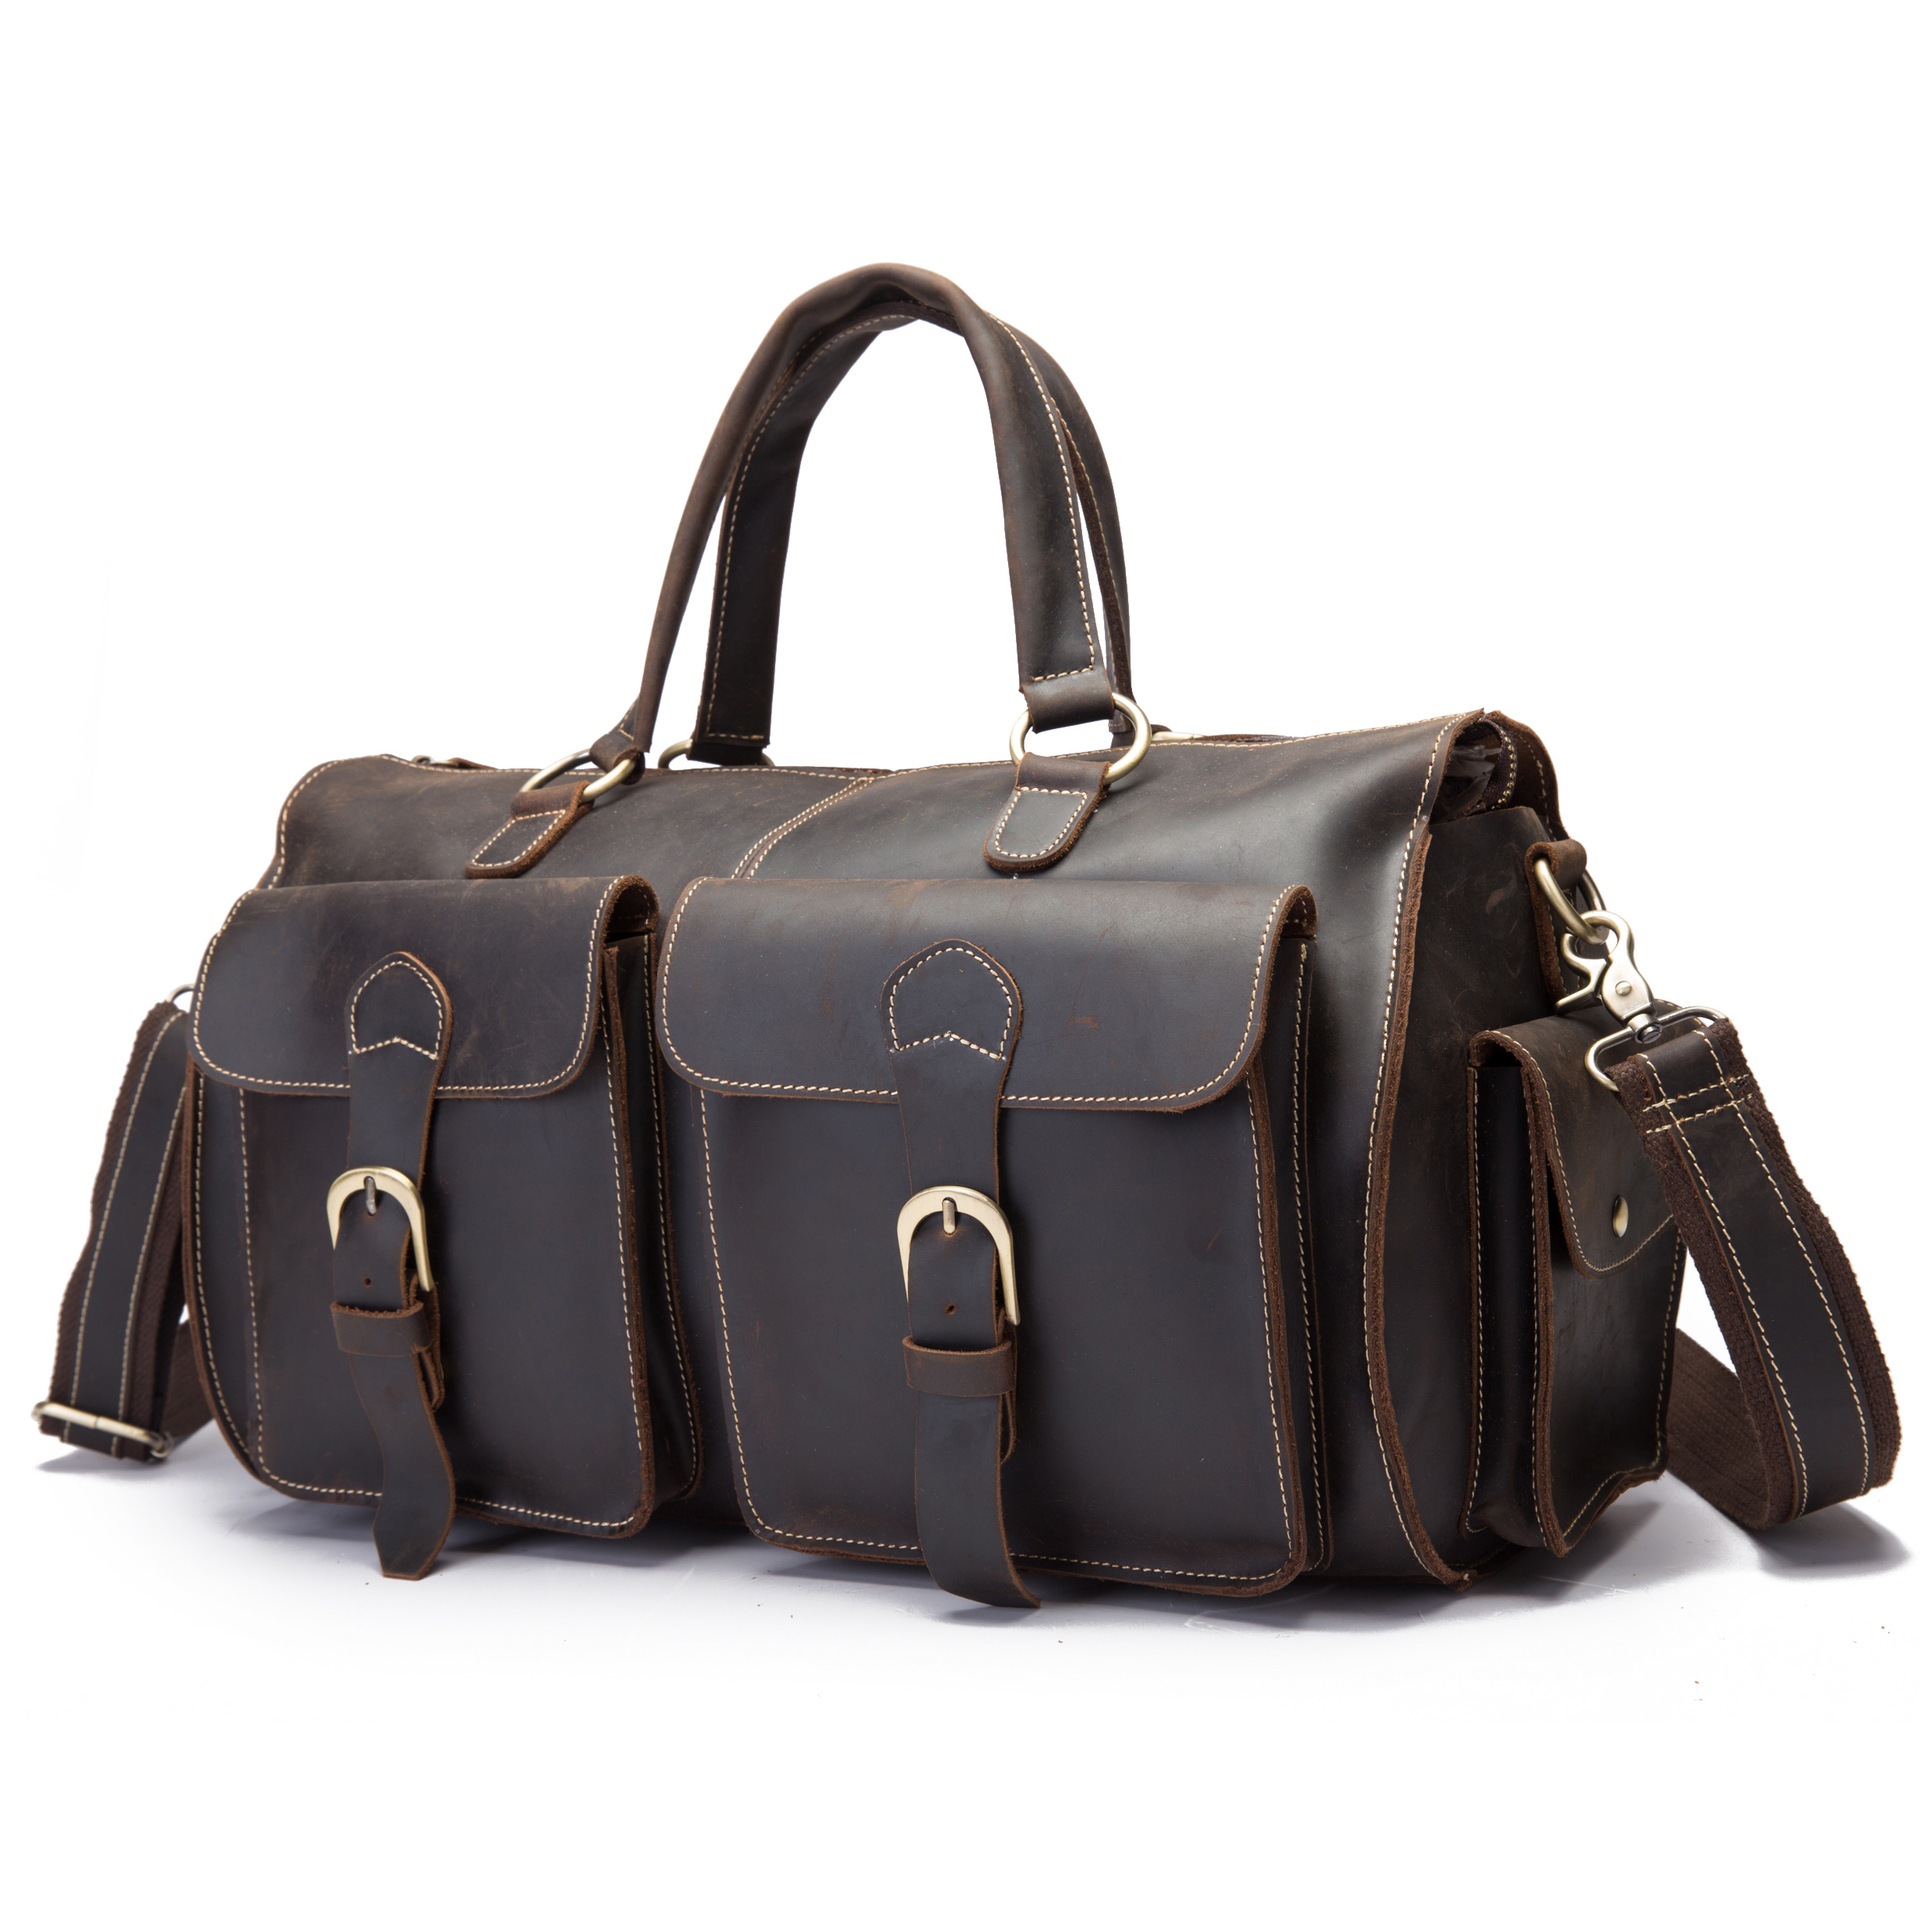 Cow Genuine Leather Men Travel Bags Luxury Crazy Horse Skin Portable Male Shoulder Bags Brand Real Leather Vintage Travel DuffleCow Genuine Leather Men Travel Bags Luxury Crazy Horse Skin Portable Male Shoulder Bags Brand Real Leather Vintage Travel Duffle